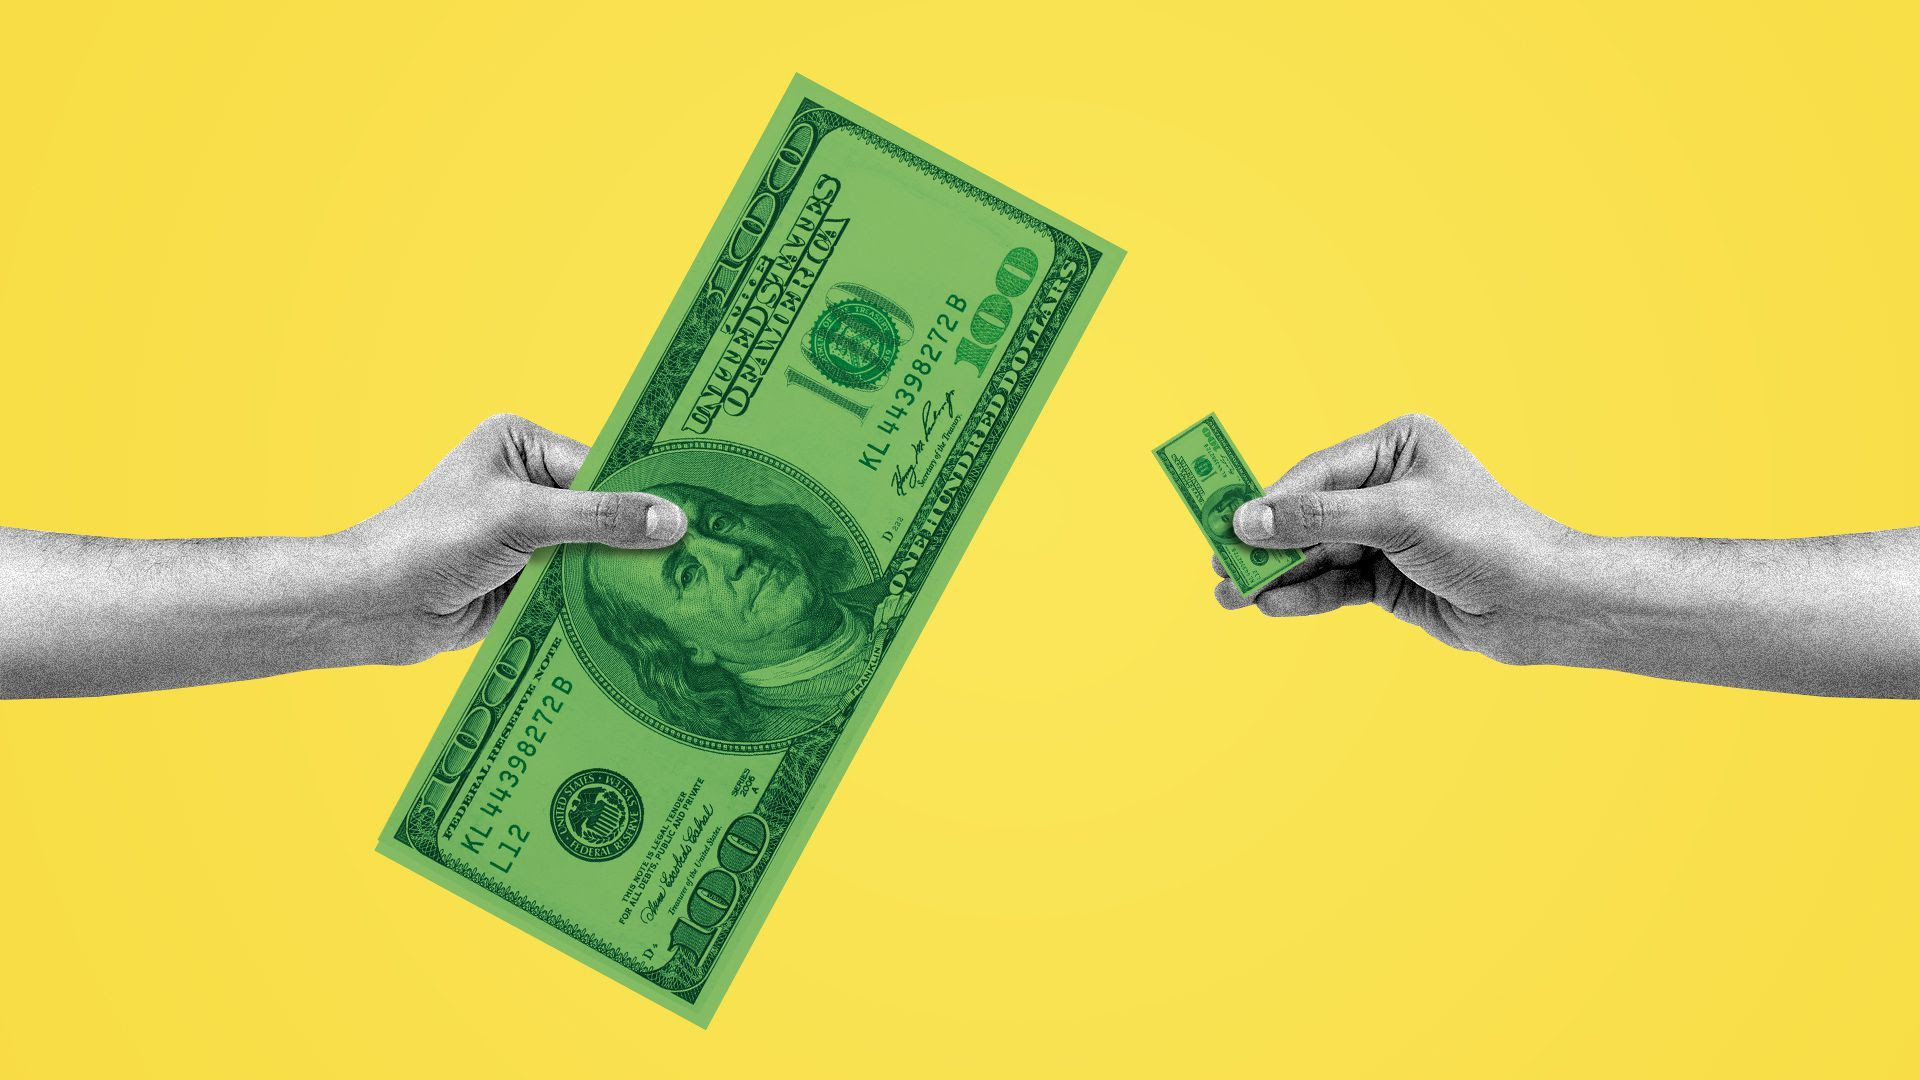 Illustration of two hands exchanging different size bills